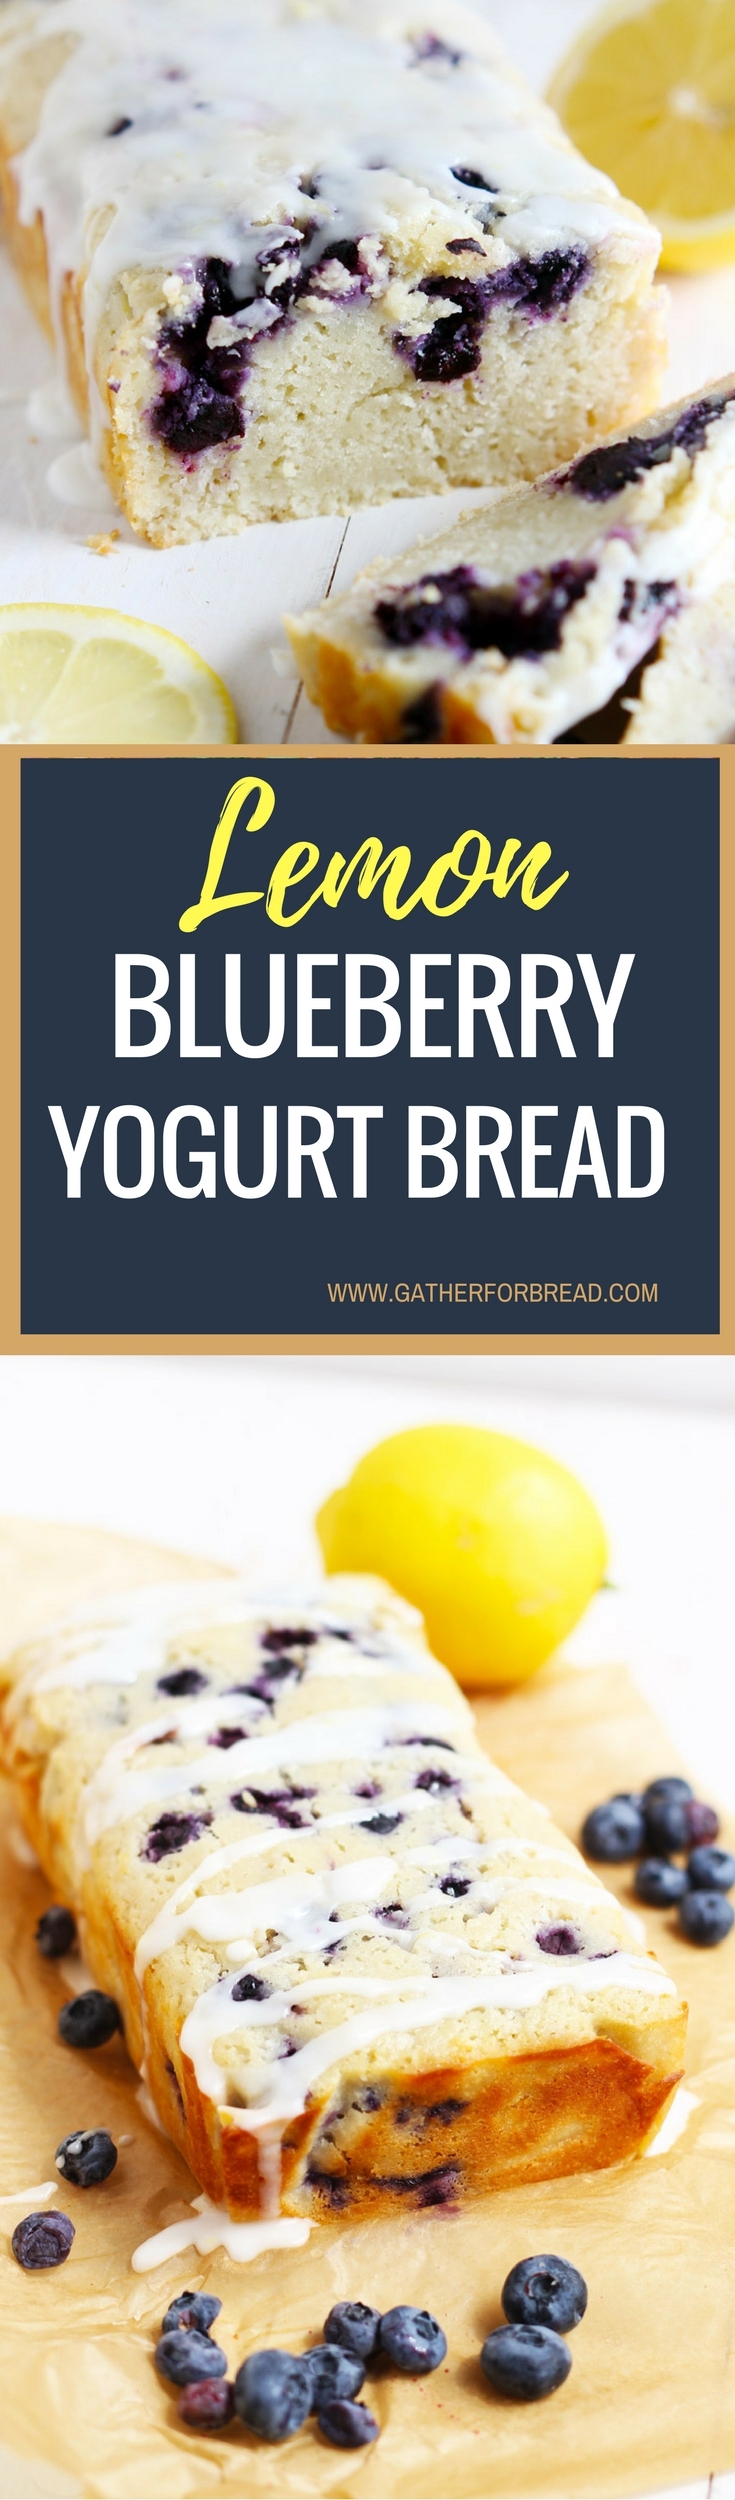 Lemon Blueberry Yogurt Bread (1) - Gather for Bread